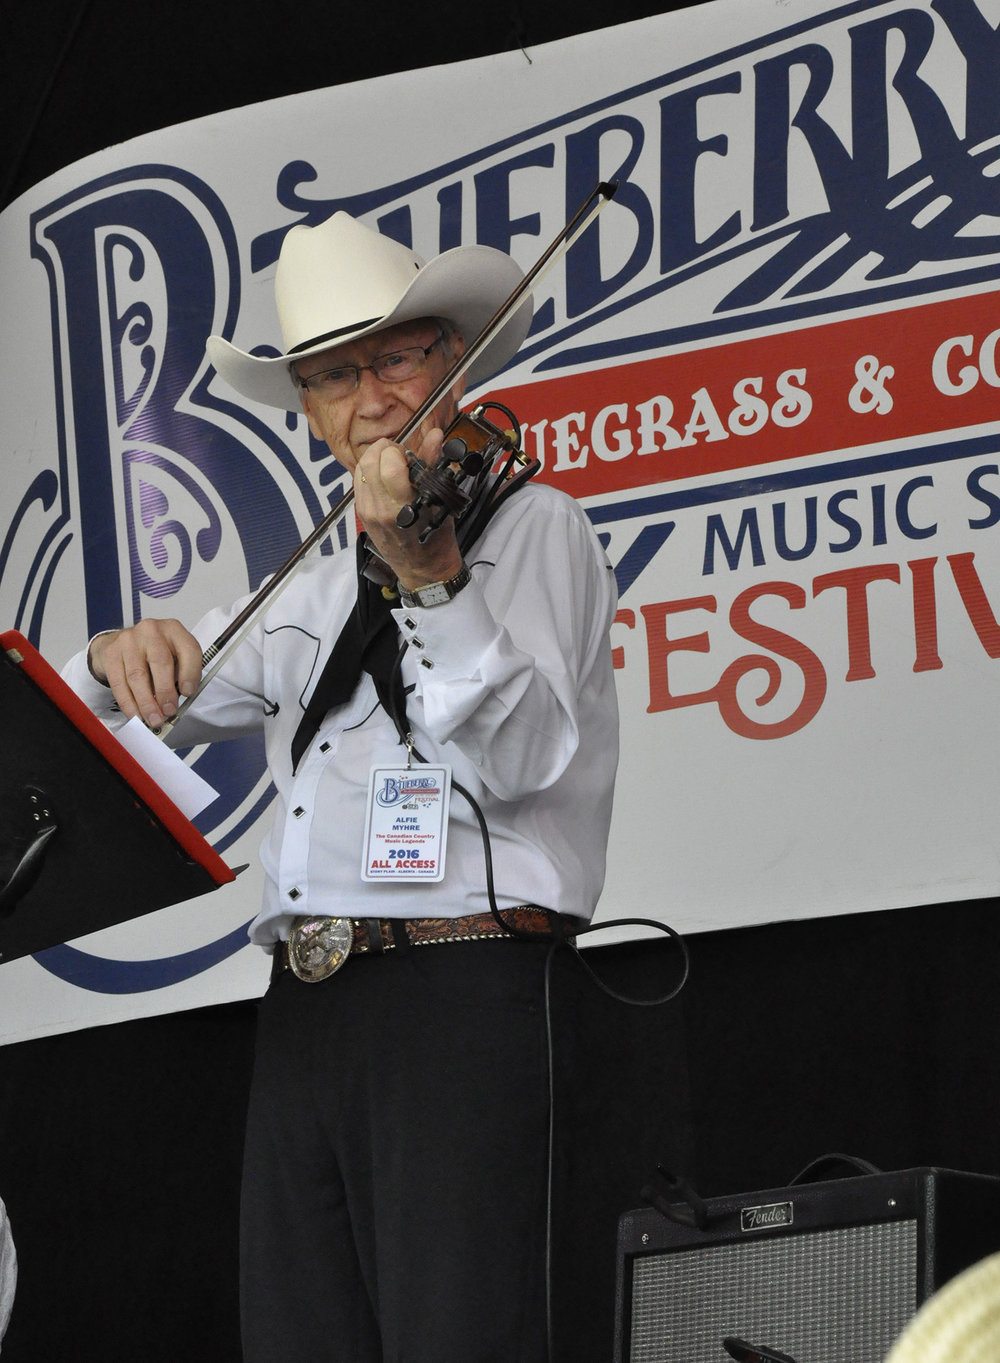 Alfie Myhre of The Canadian Country Music Legends